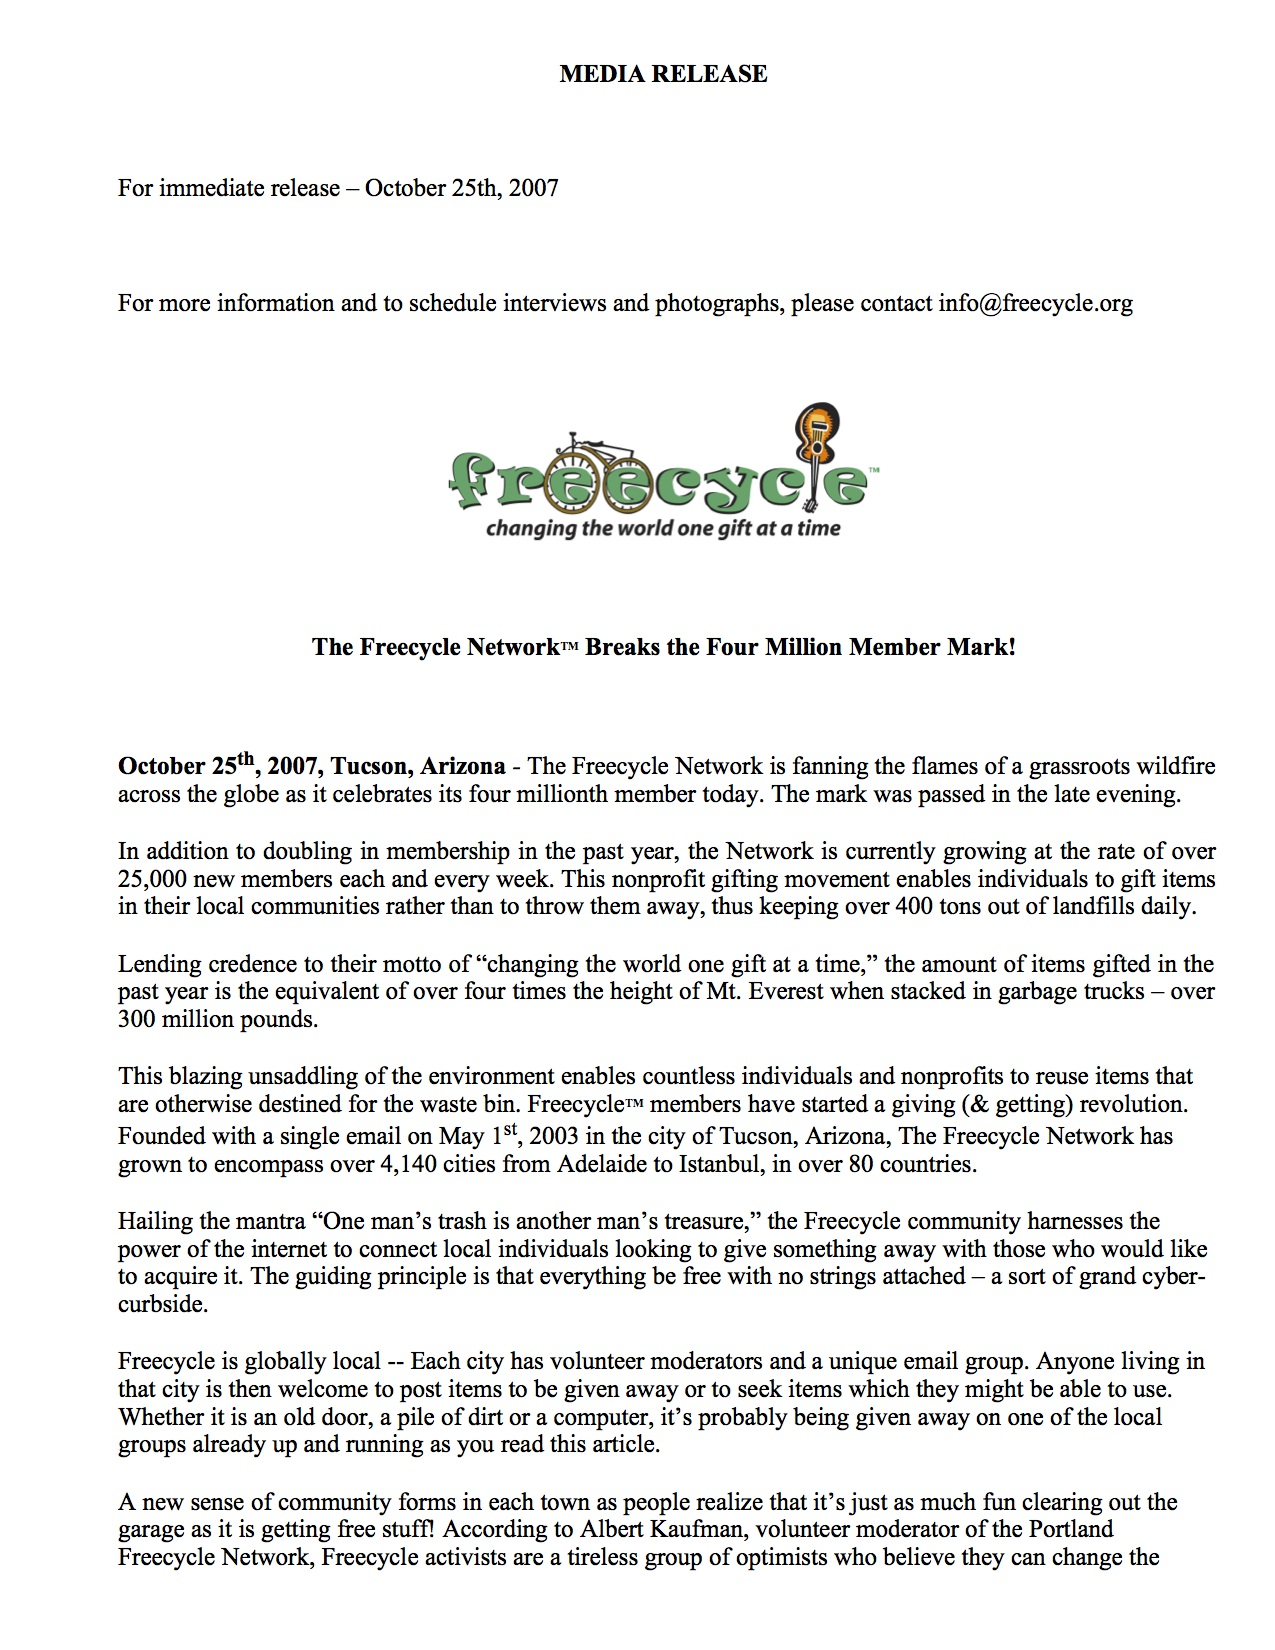 07-10-25 The Freecyle Network media release.jpg